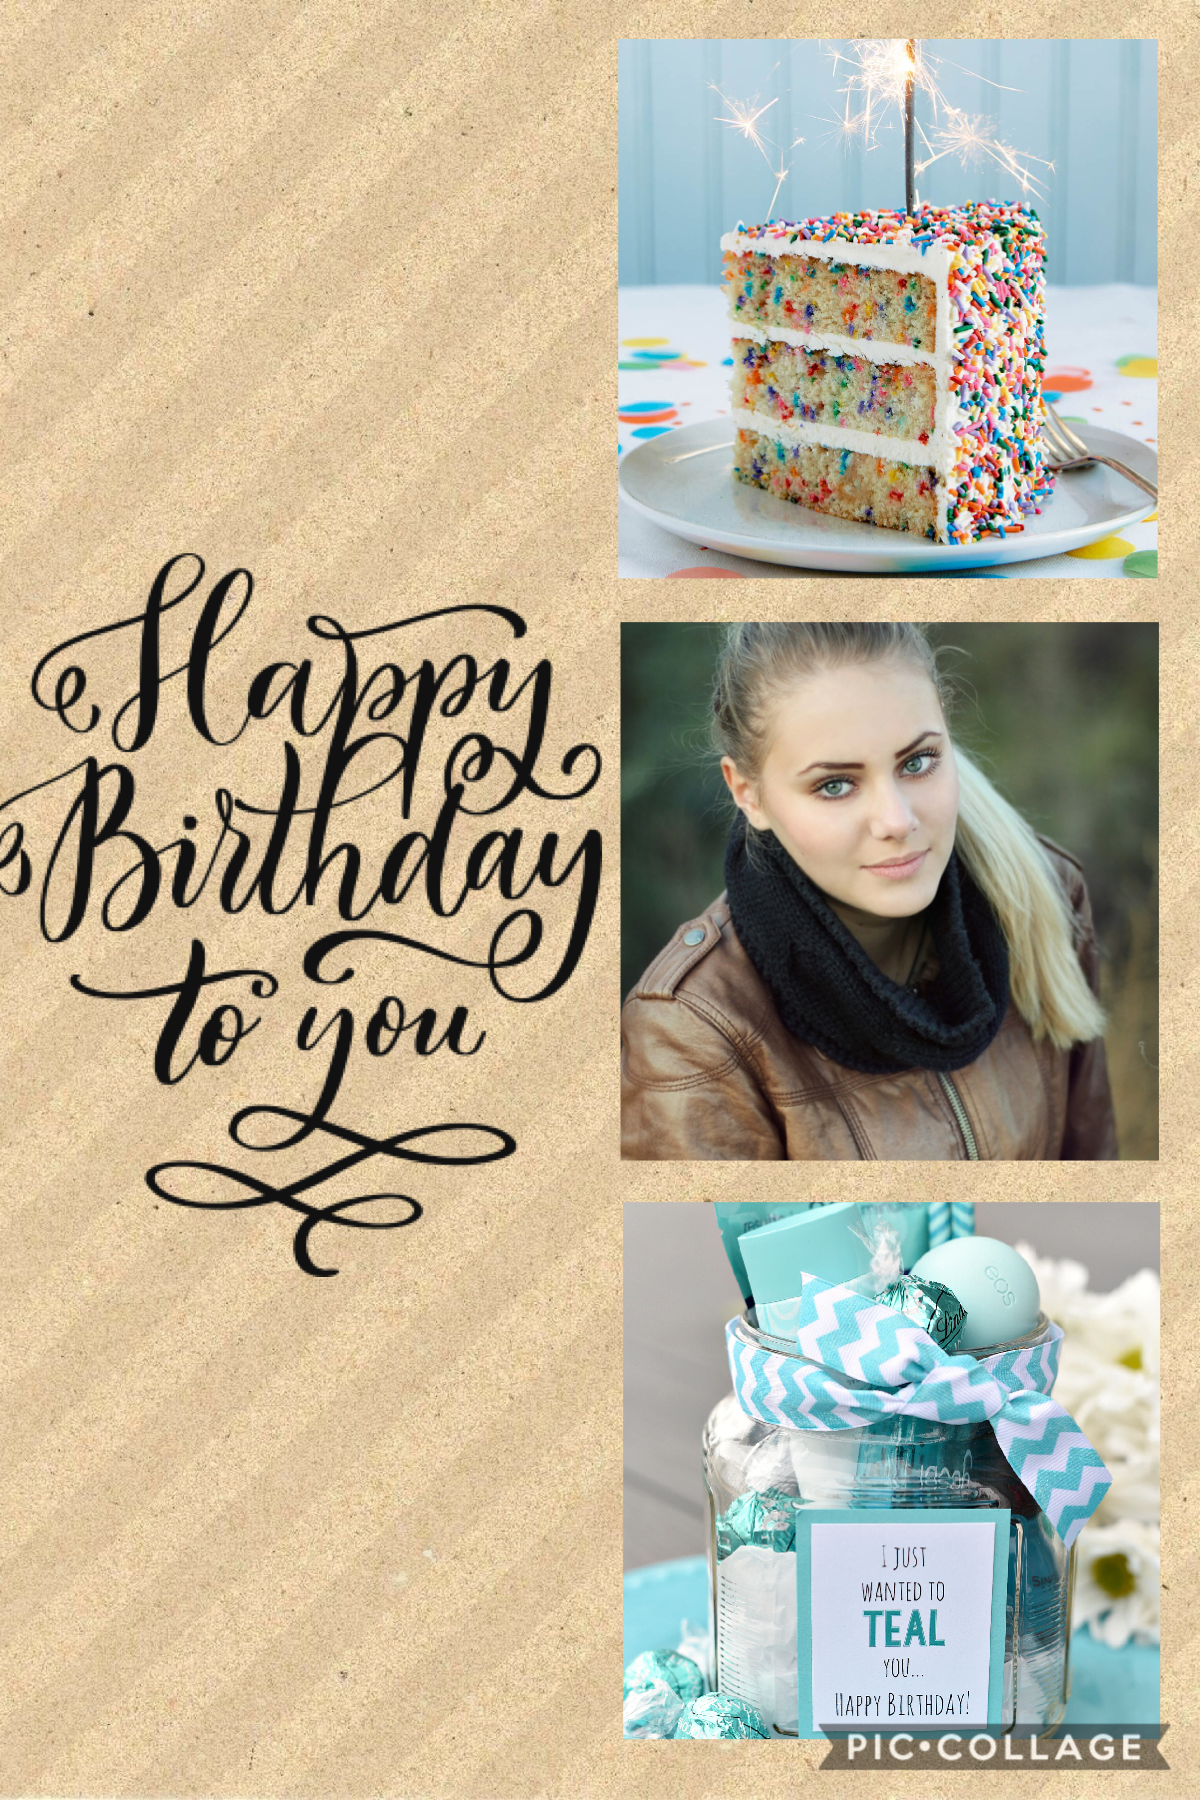 Happy B'day sis, have a great day! God bless you :)